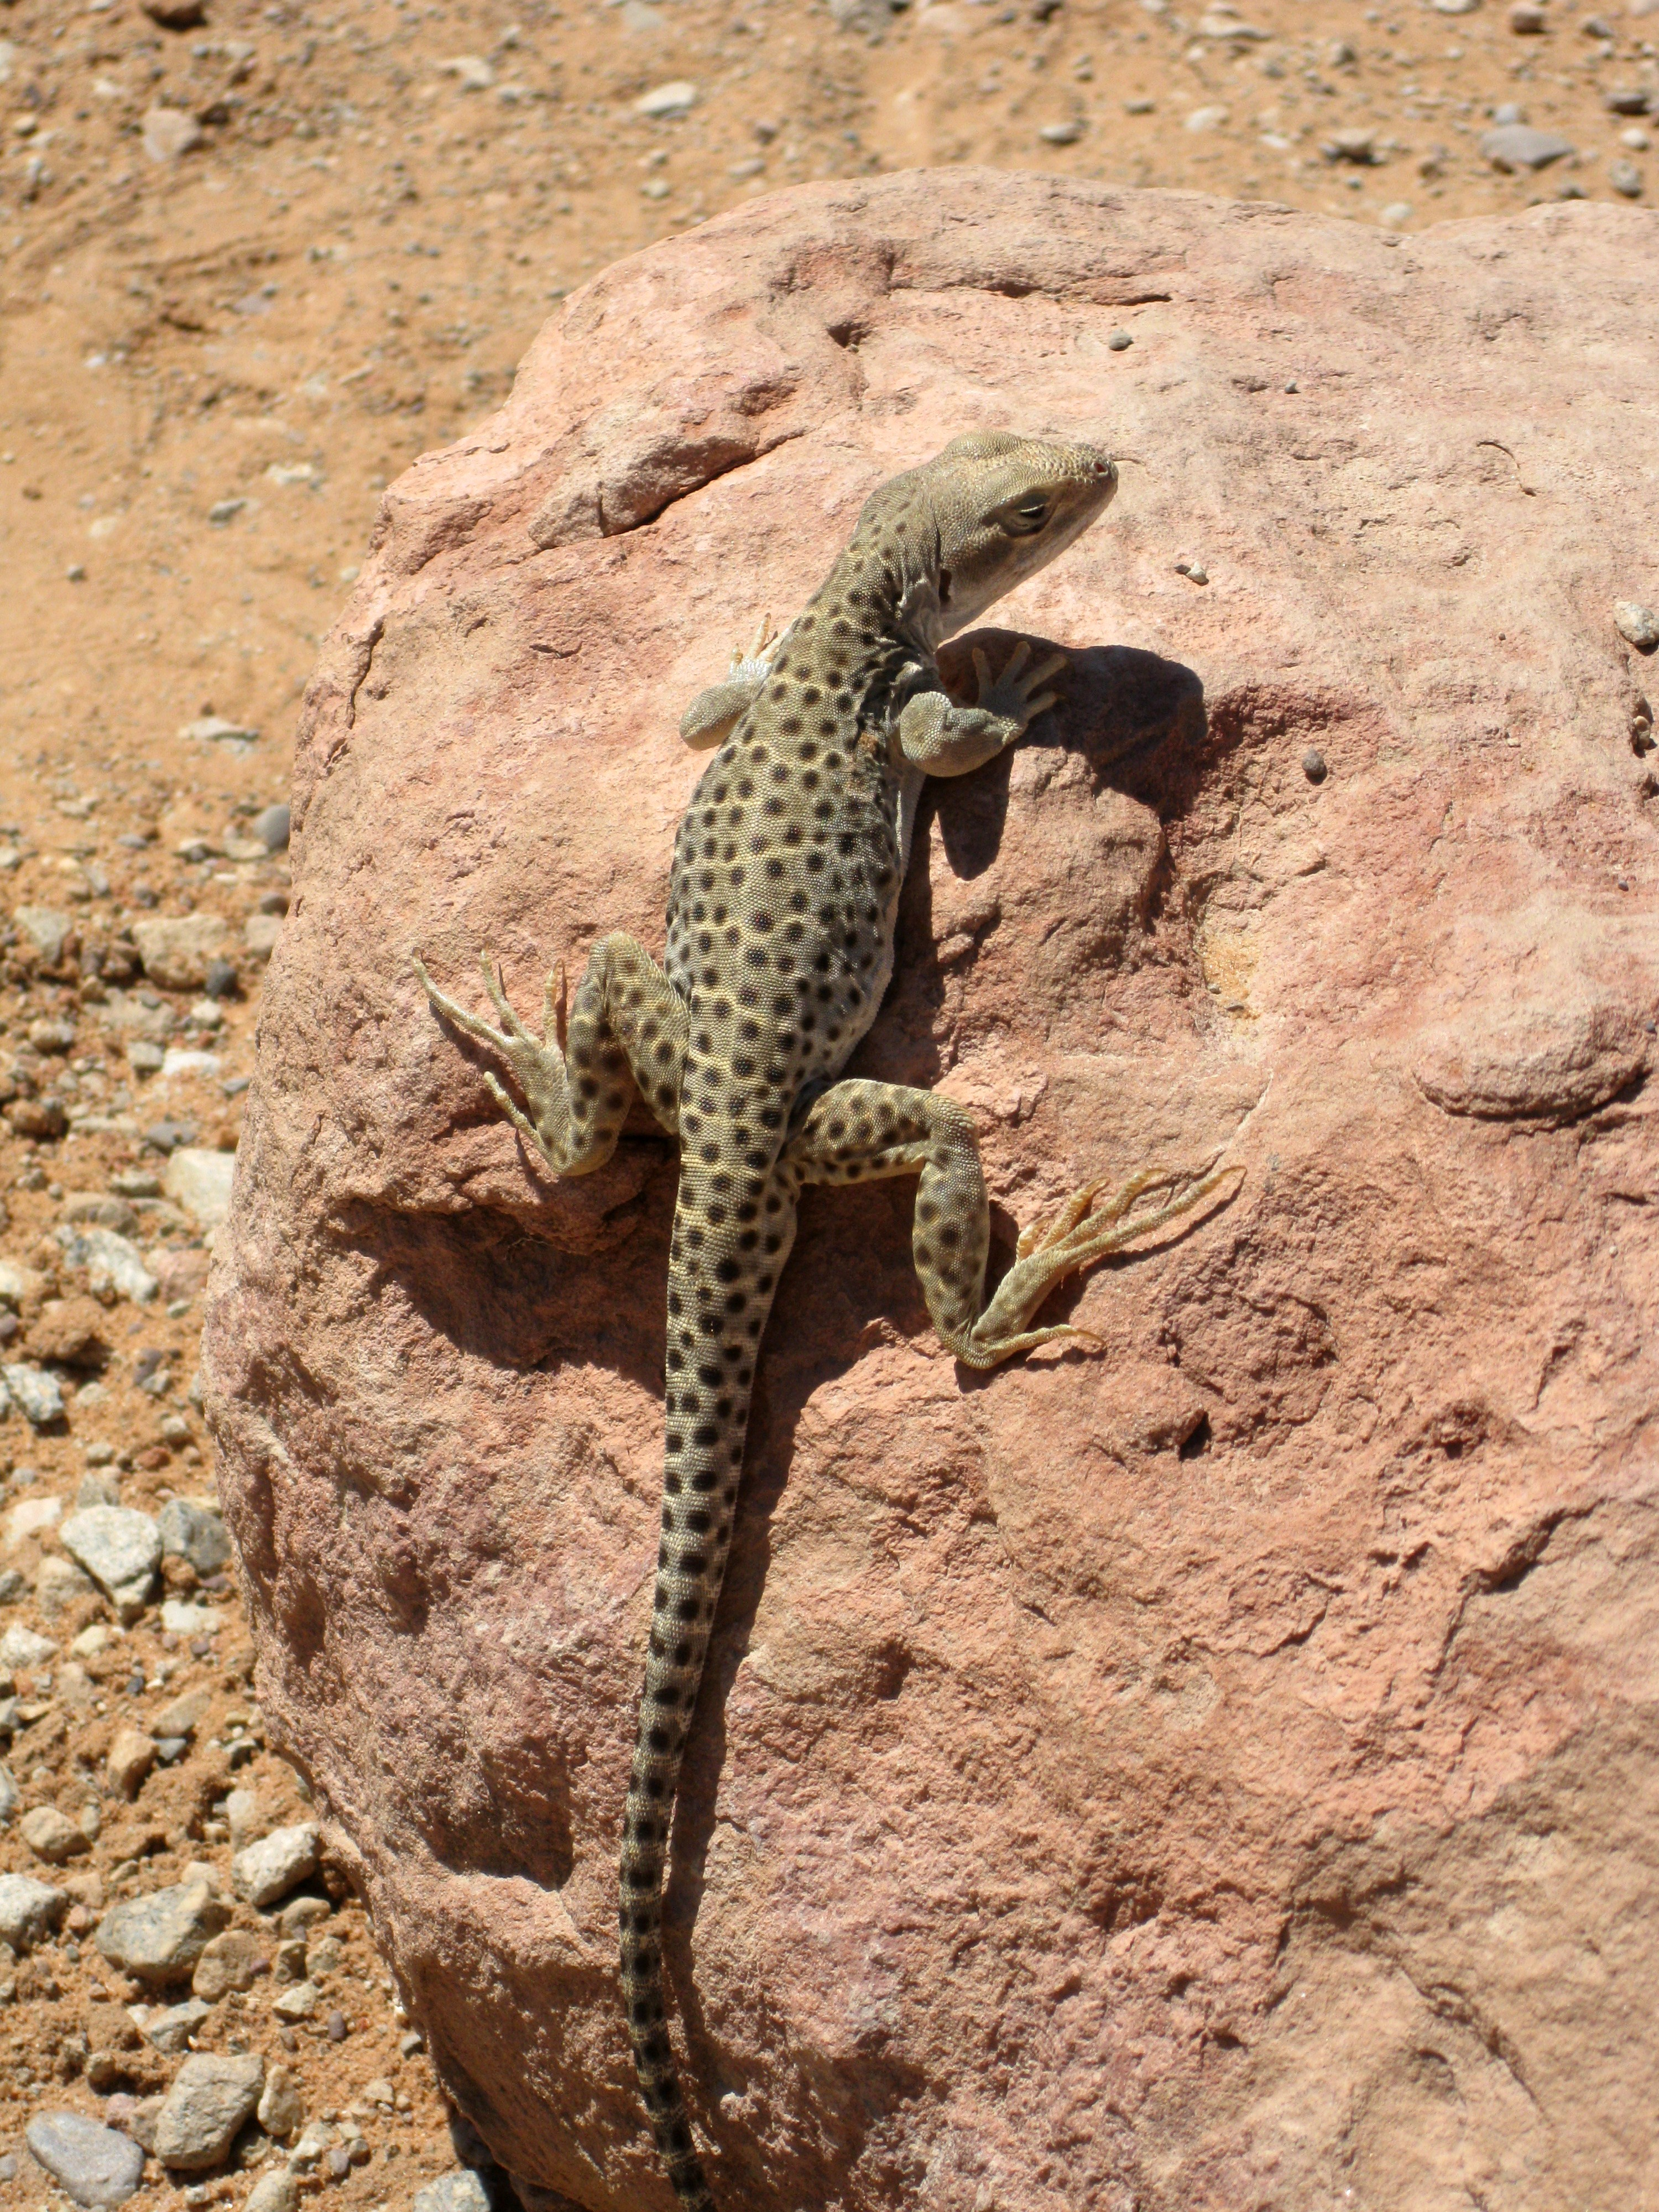 Lizards Eating Other Lizards Eat Other Smaller Lizards